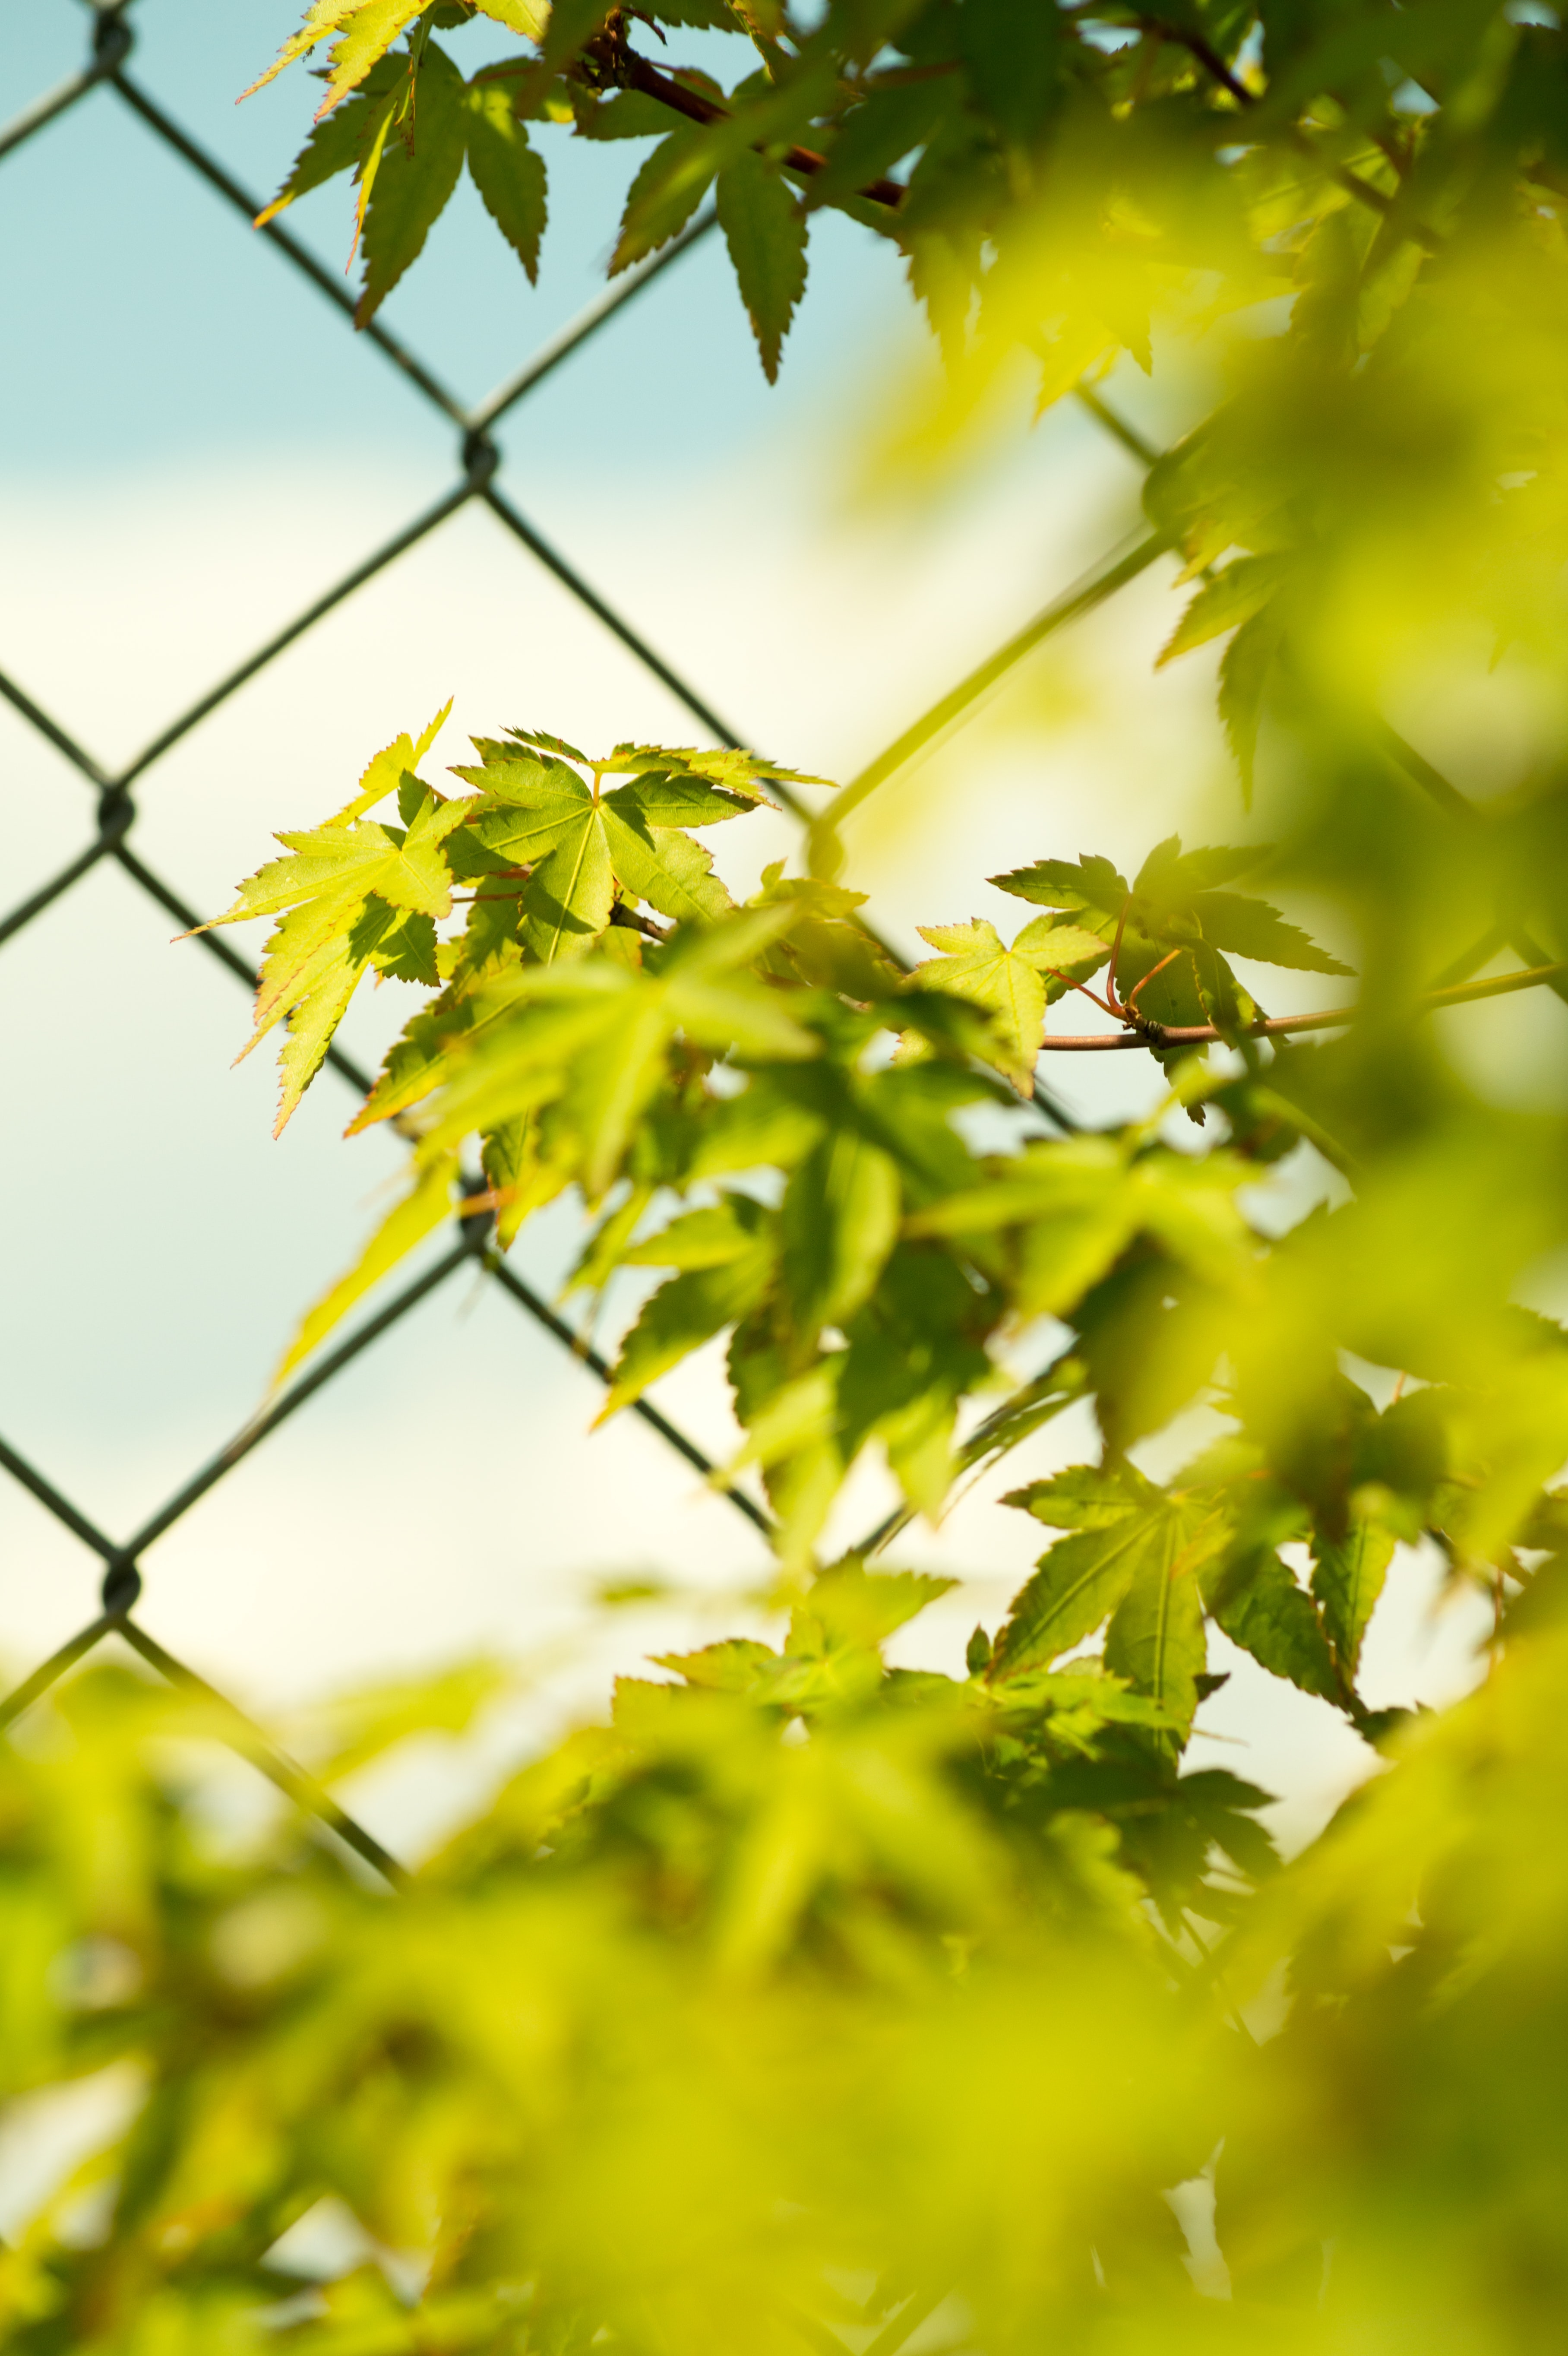 close up photography of green leafed plant beside wire fence